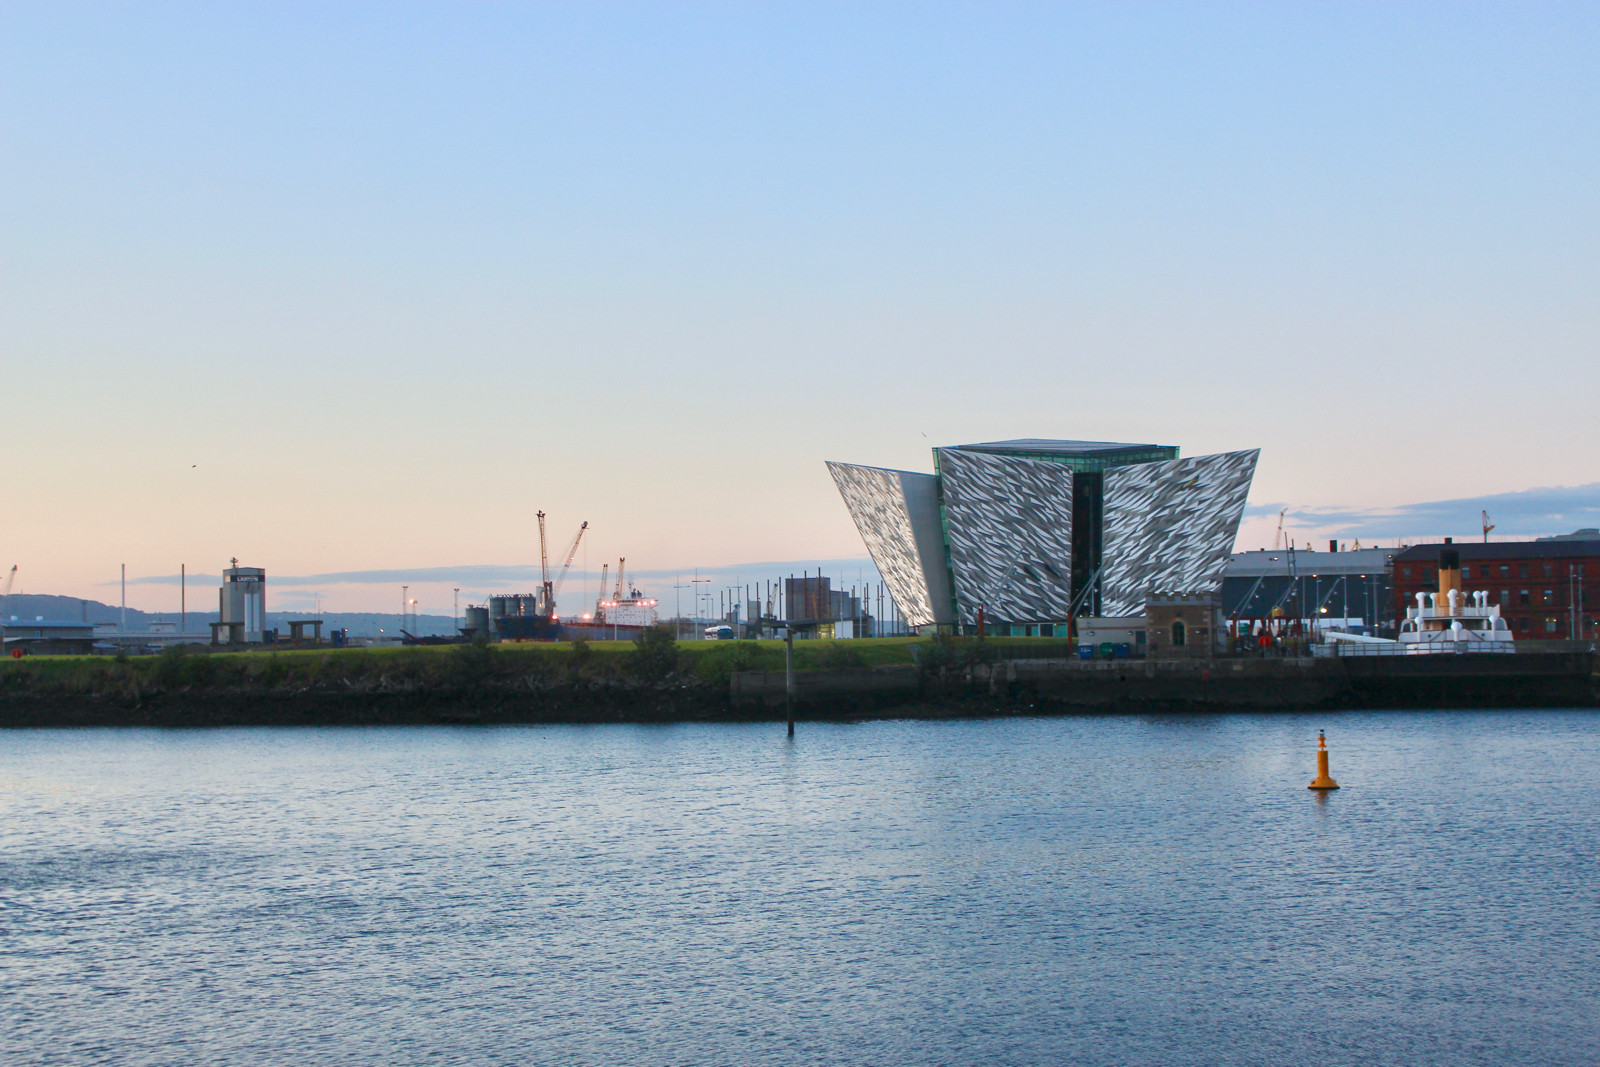 things to do in belfast, titanic belfast, titanic exhibition centre Belfast, what to do in Belfast, visit Belfast, Belfast blog, Belfast blogger, tourism Belfast, northern ireland tourism, titanic quarter Belfast, travel blog belfast